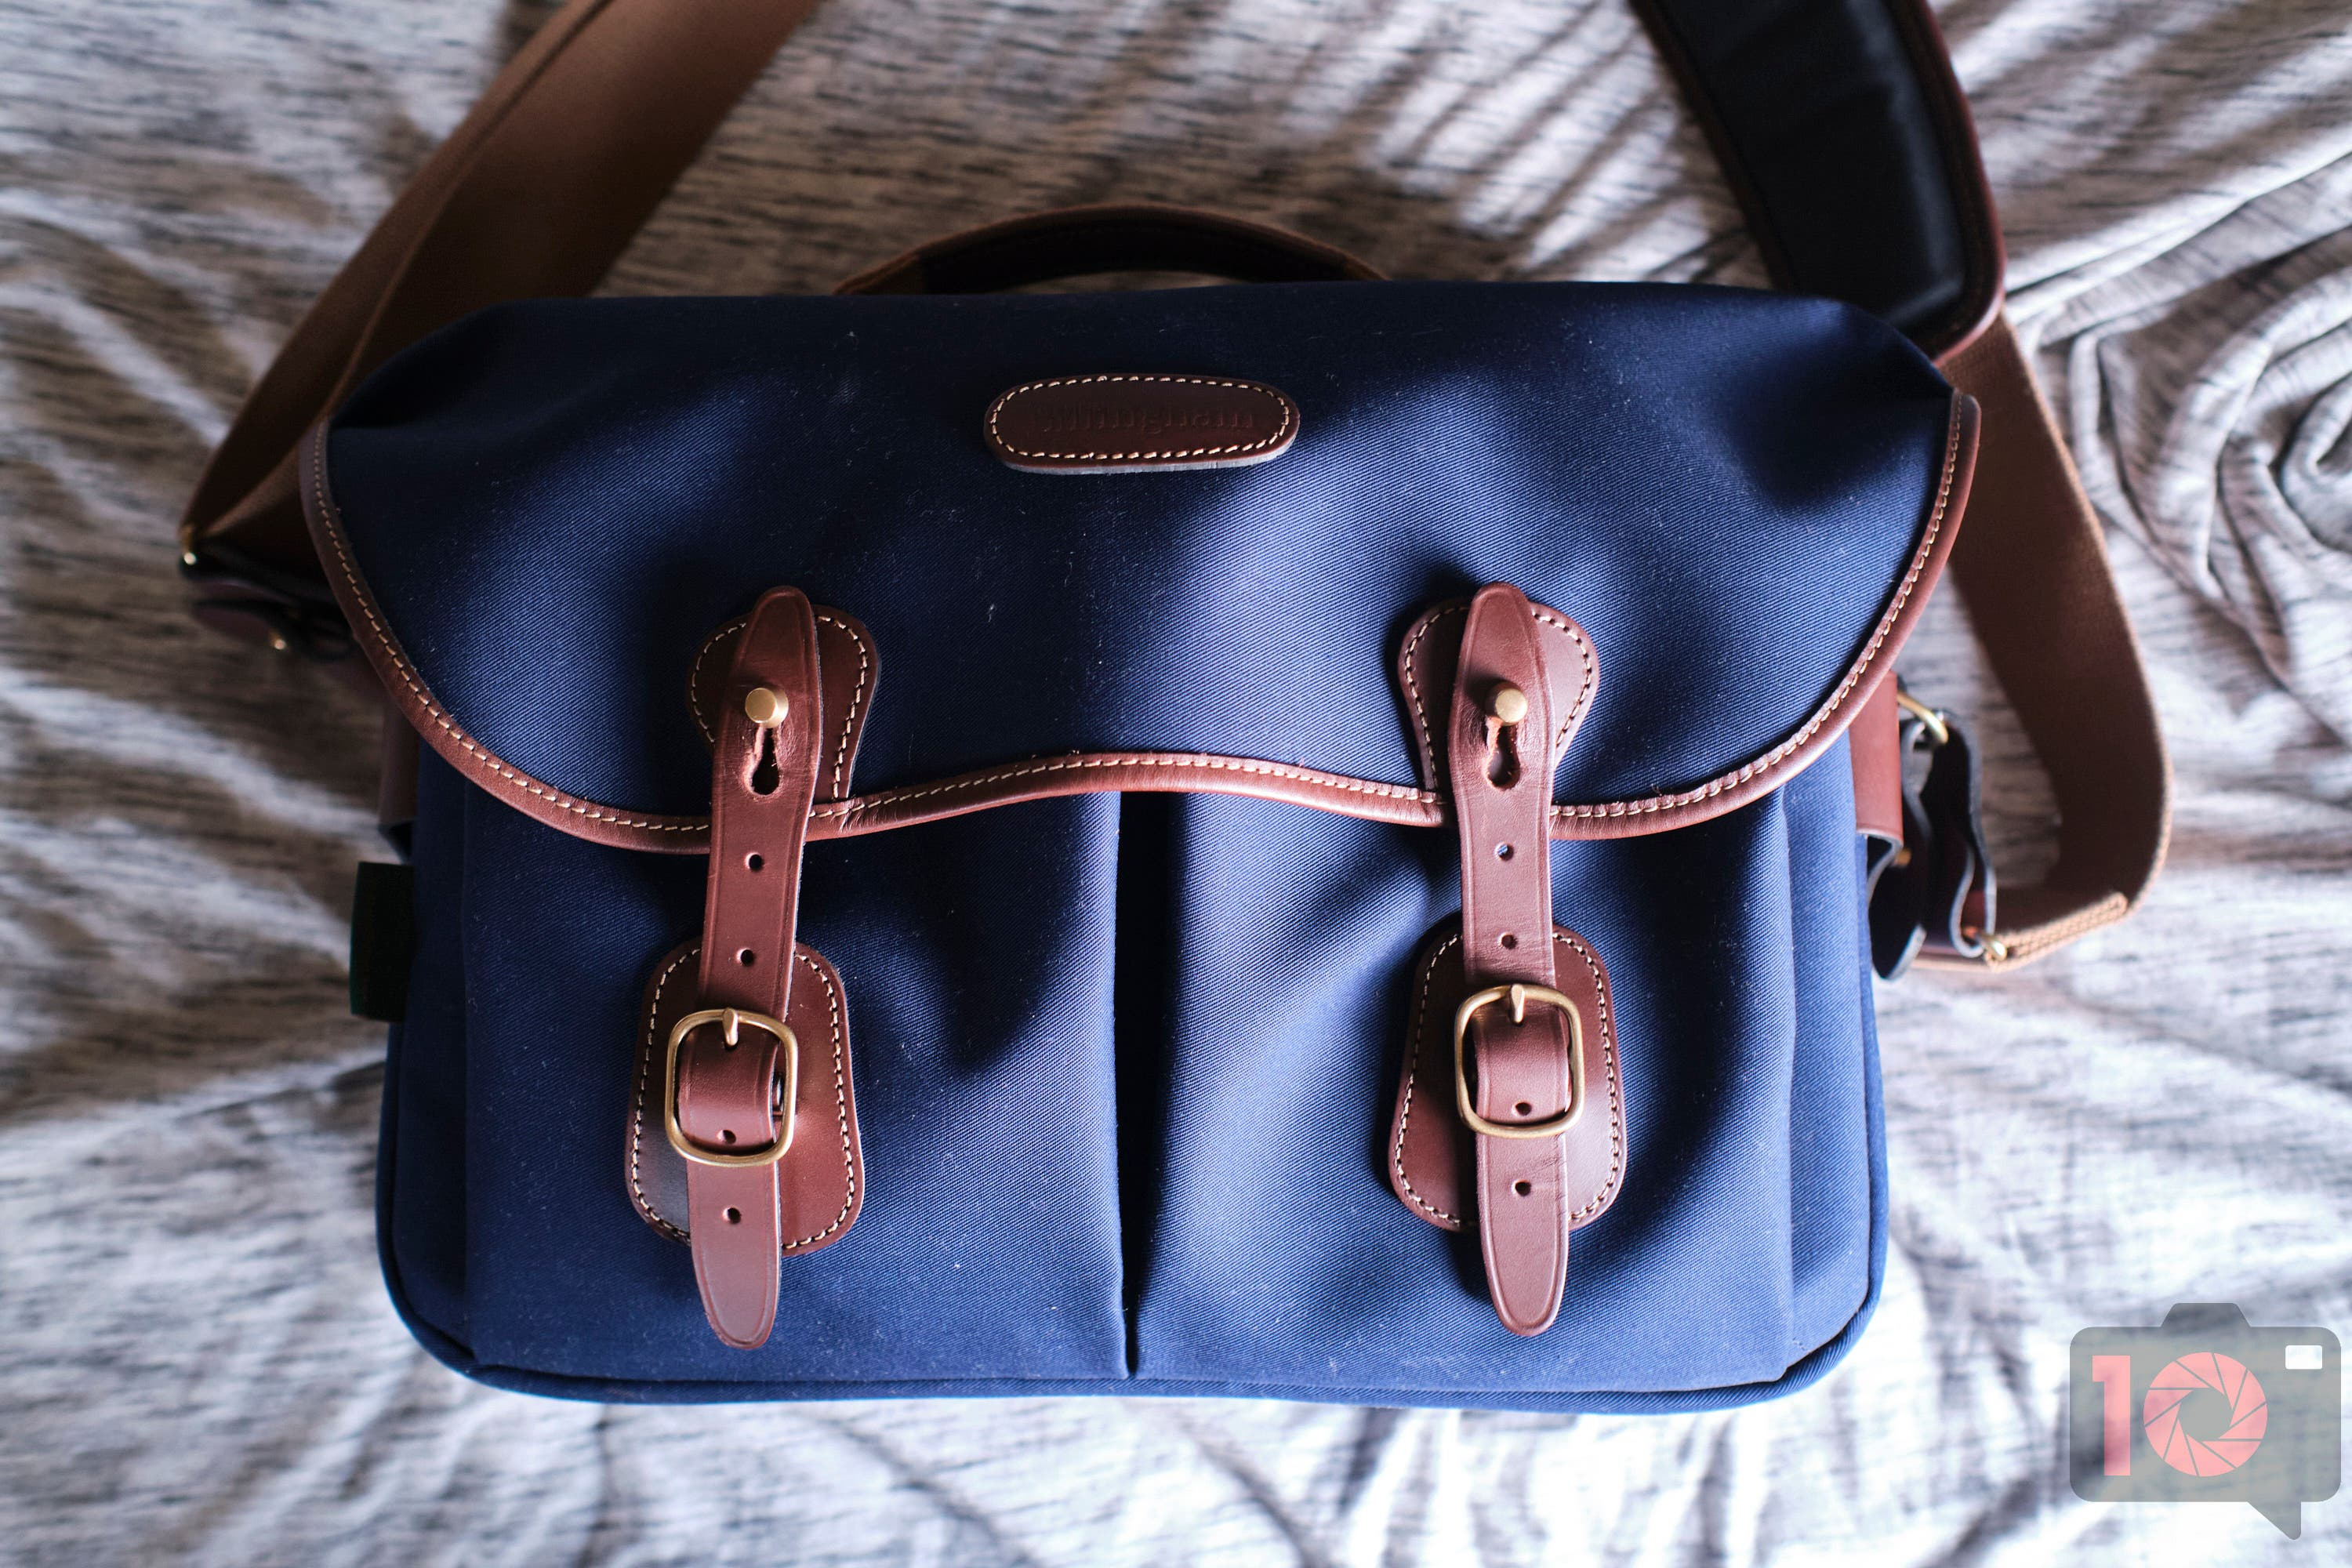 Their Most Gorgeous Bag Yet! Billingham Hadley One Review